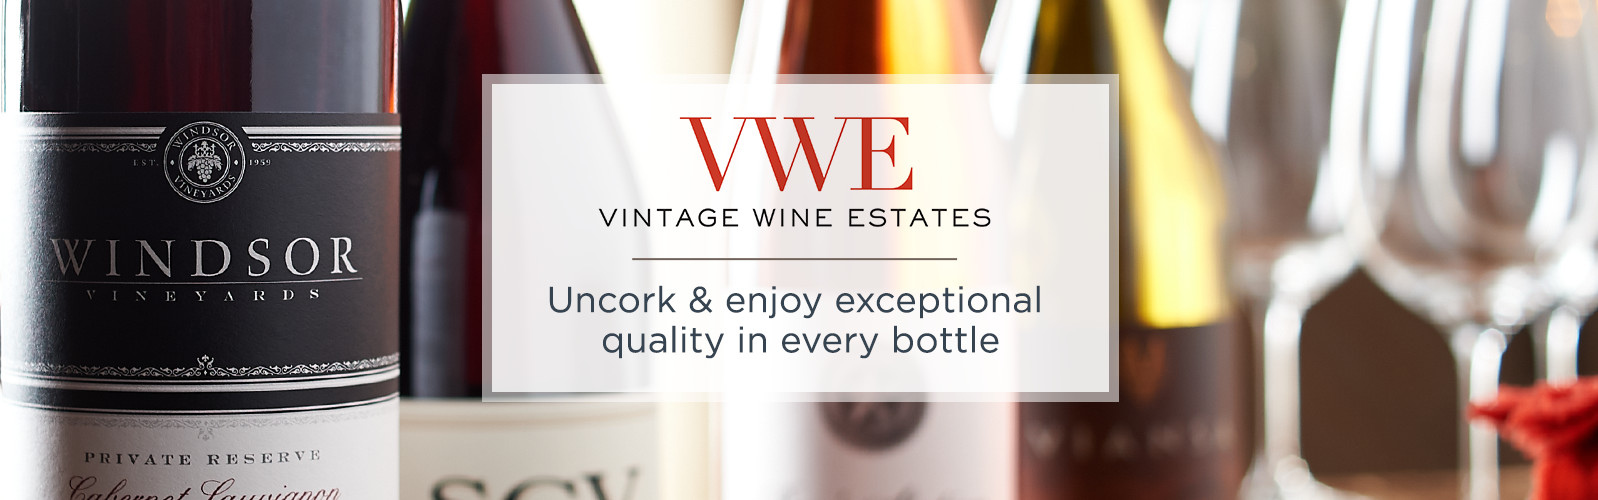 Vintage Wine Estates.  Uncork & enjoy exceptional quality in every bottle.